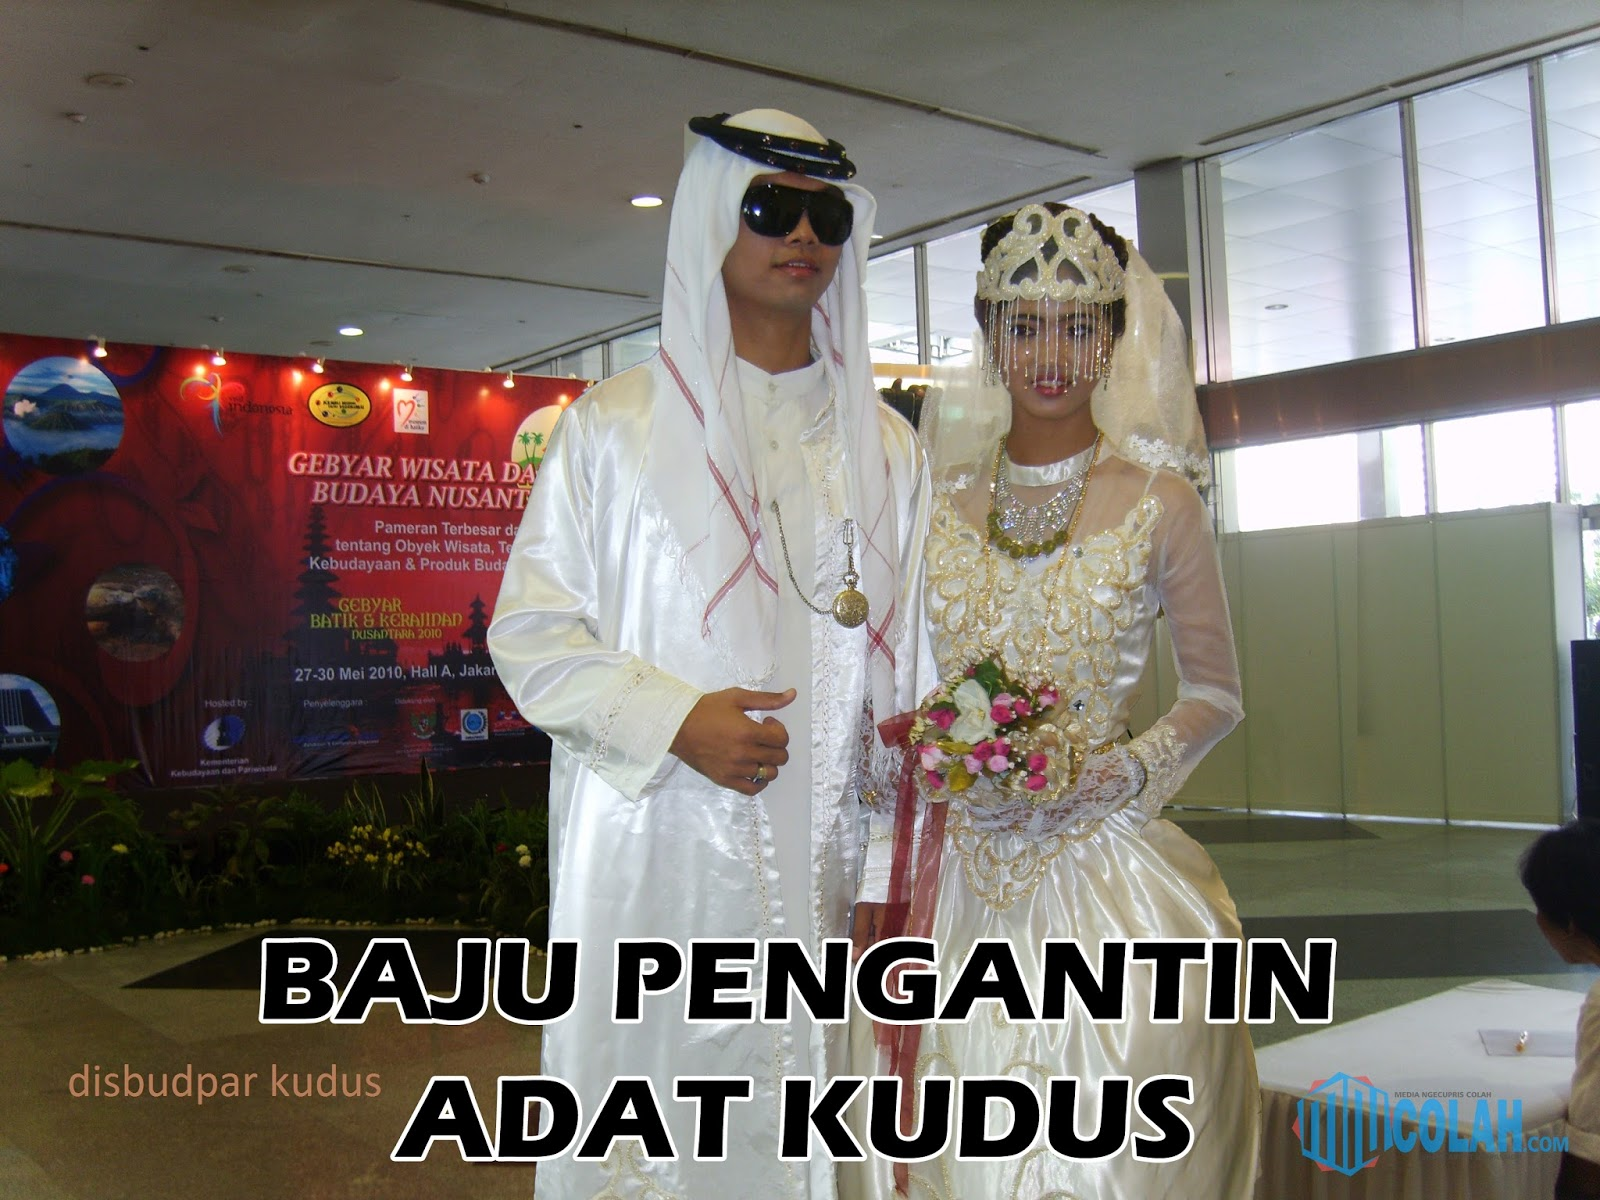 pengantin adat kudus unik namun terabaikan internet marketing